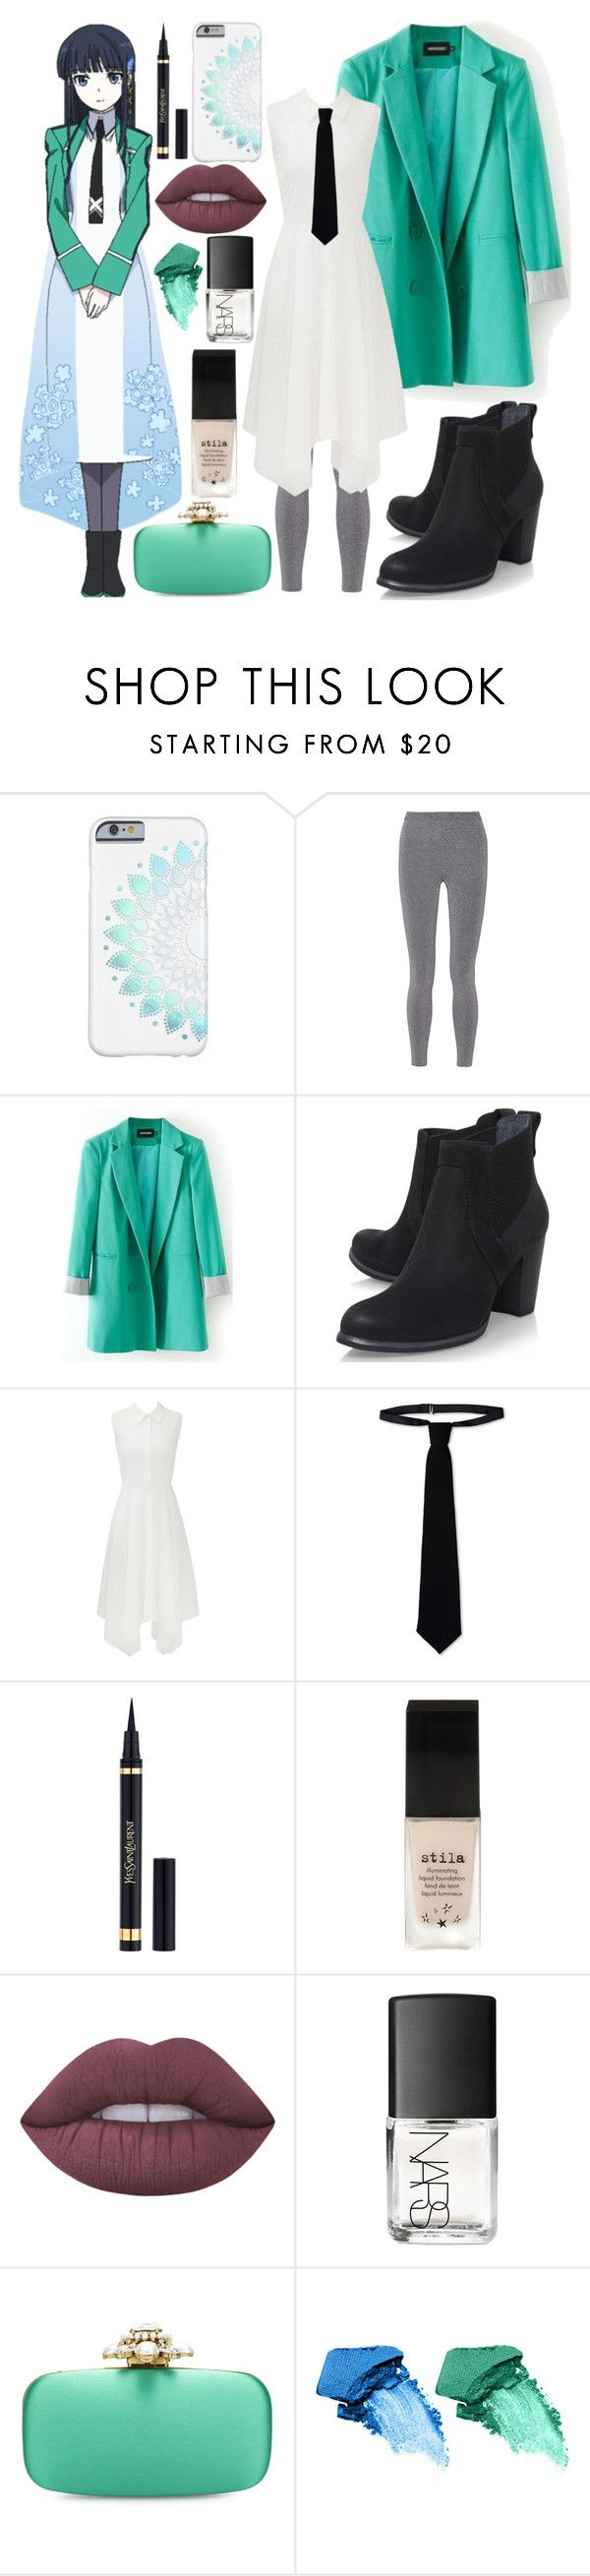 """""""The Irregular at Magic High School // Miyuki"""" by stormtrooper2003 ❤ liked on Polyvore featuring T By Alexander Wang, UGG Australia, Slate & Willow, RED Valentino, Yves Saint Laurent, Stila, Lime Crime, NARS Cosmetics and Oscar de la Renta"""